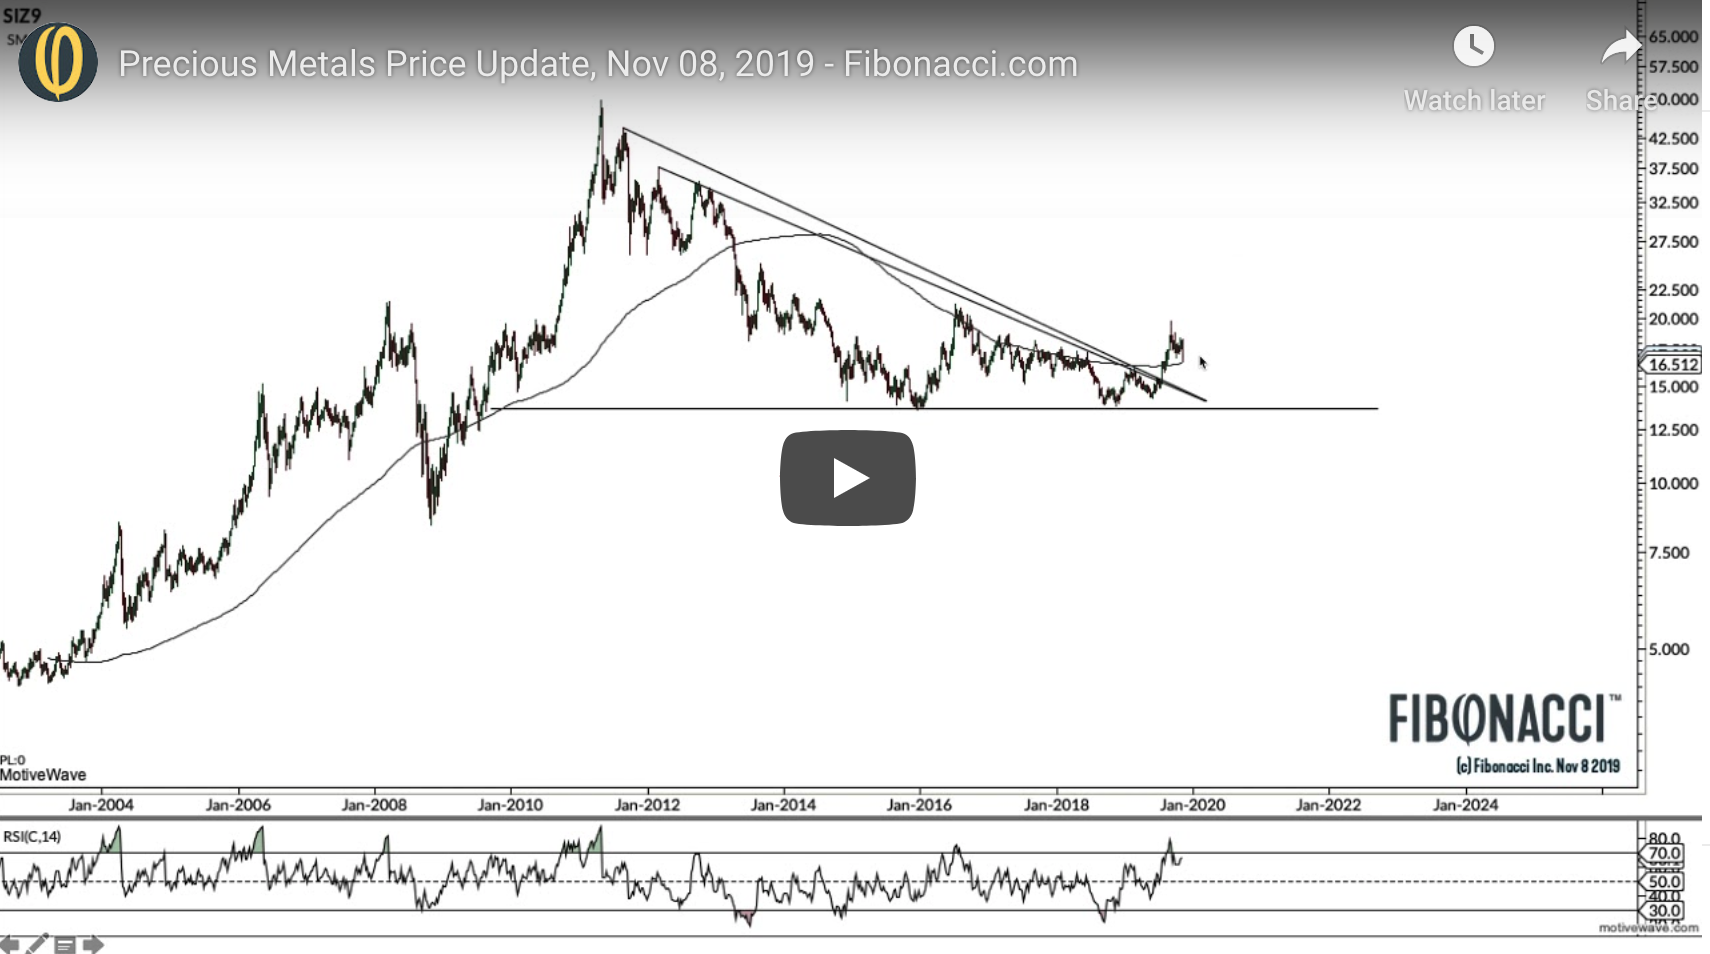 [VIDEO] Precious Metals Price Update, Nov 08, 2019